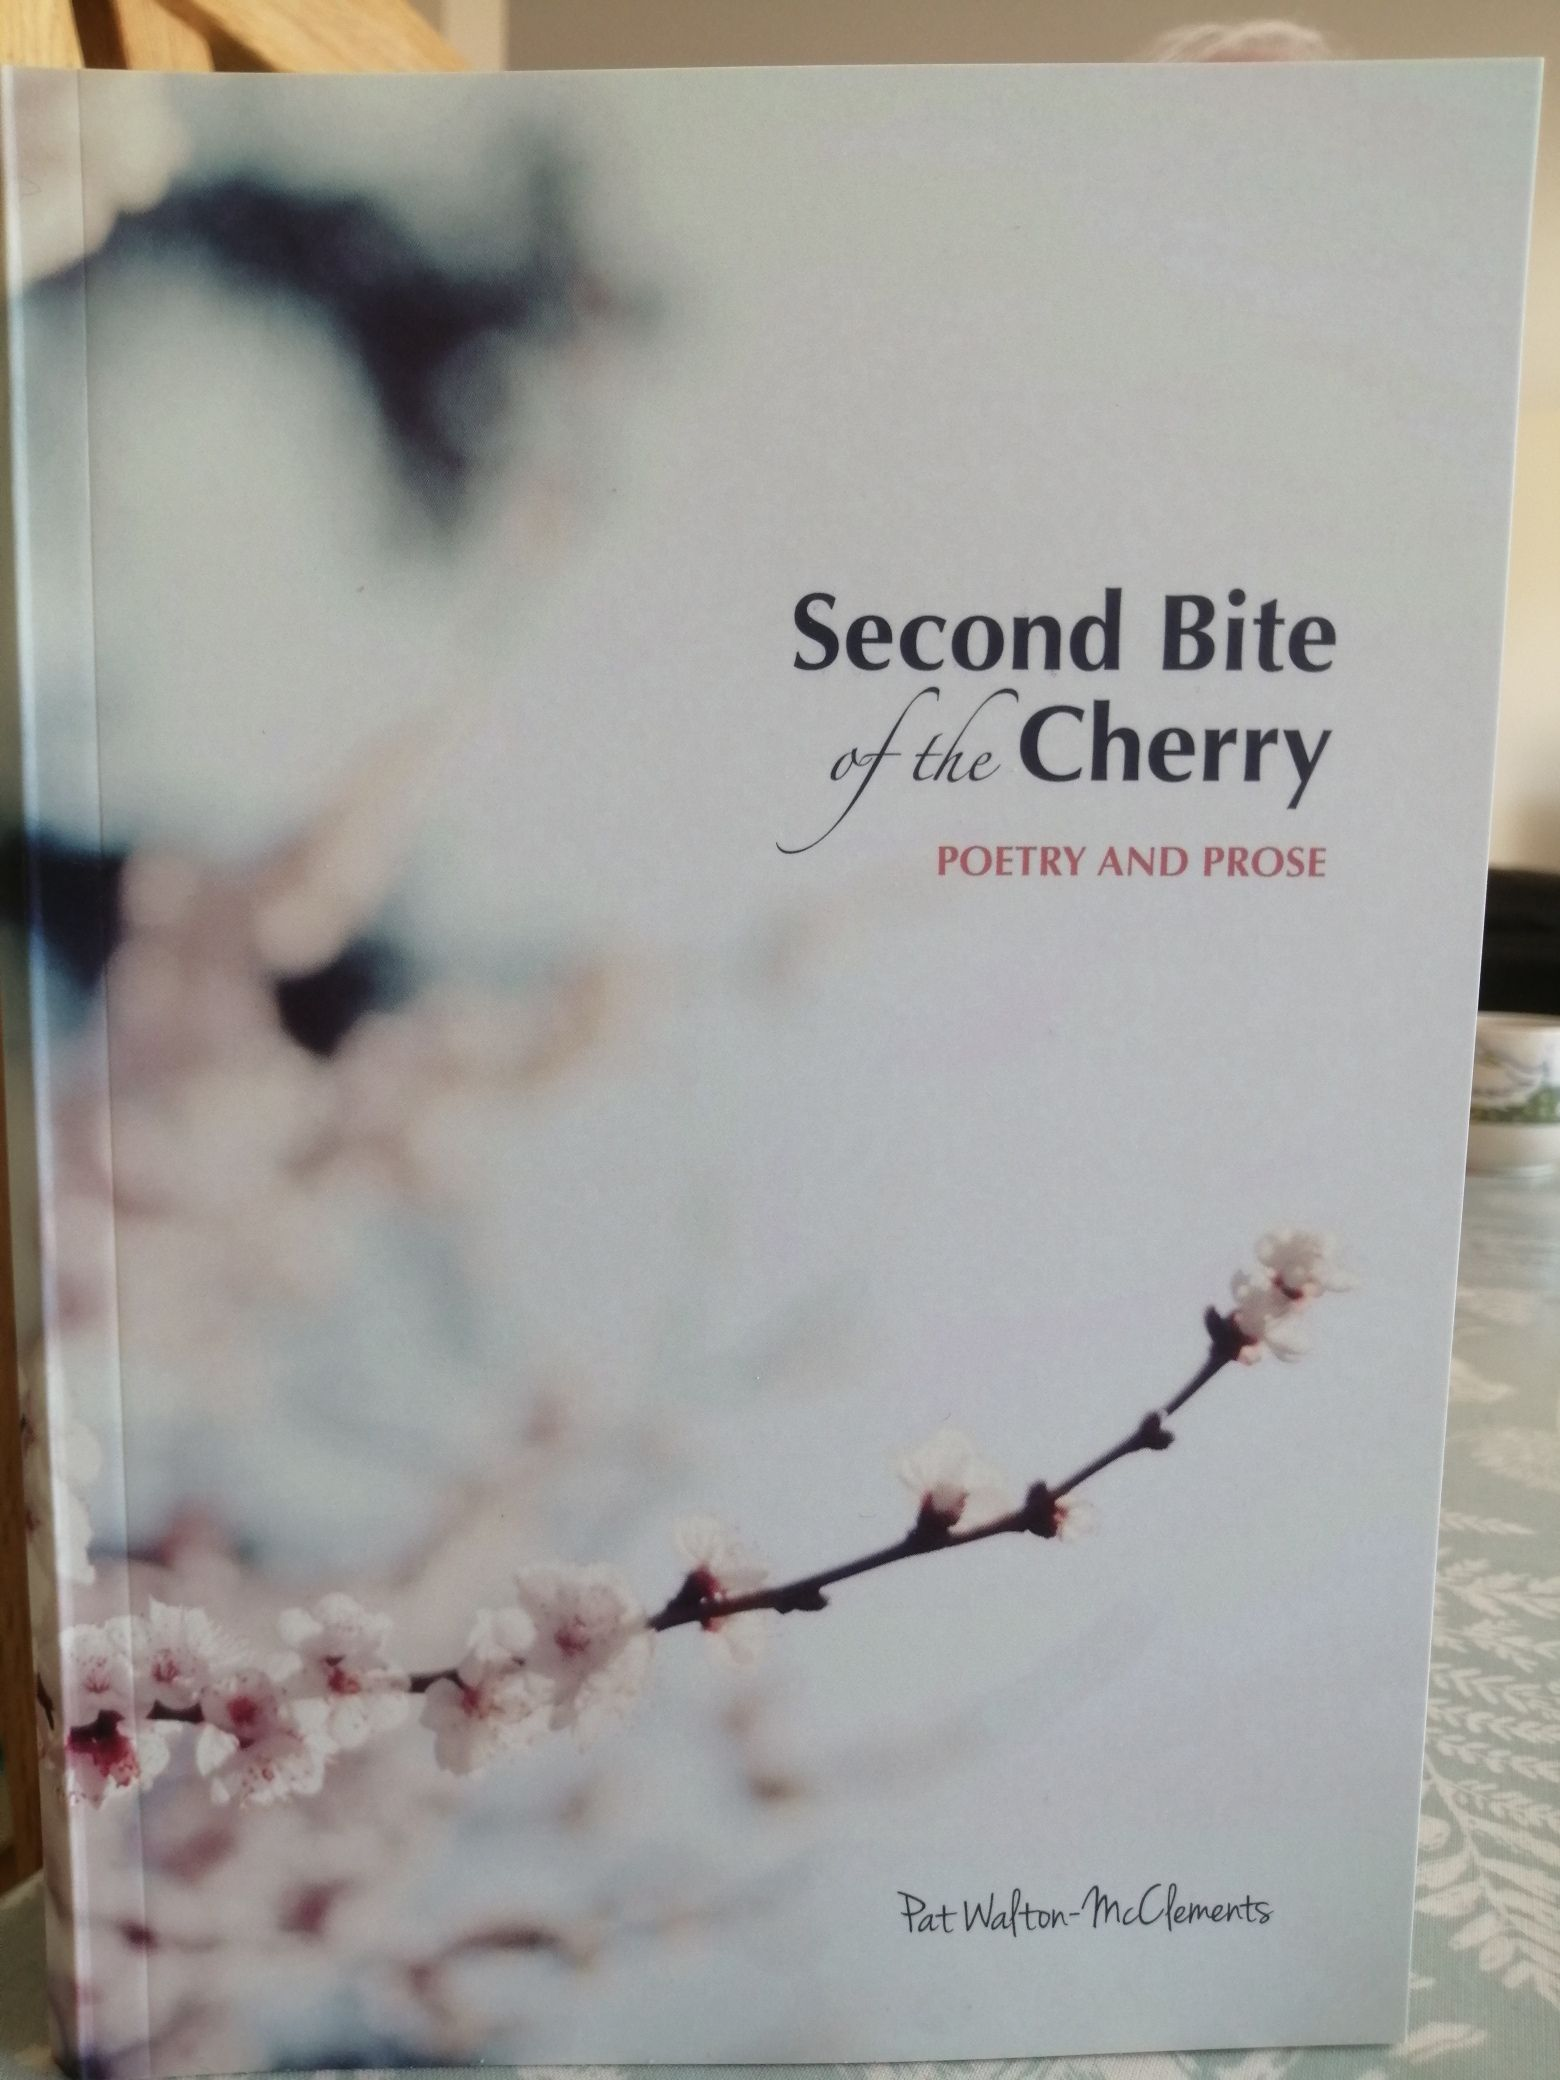 One Bite of the Cherry